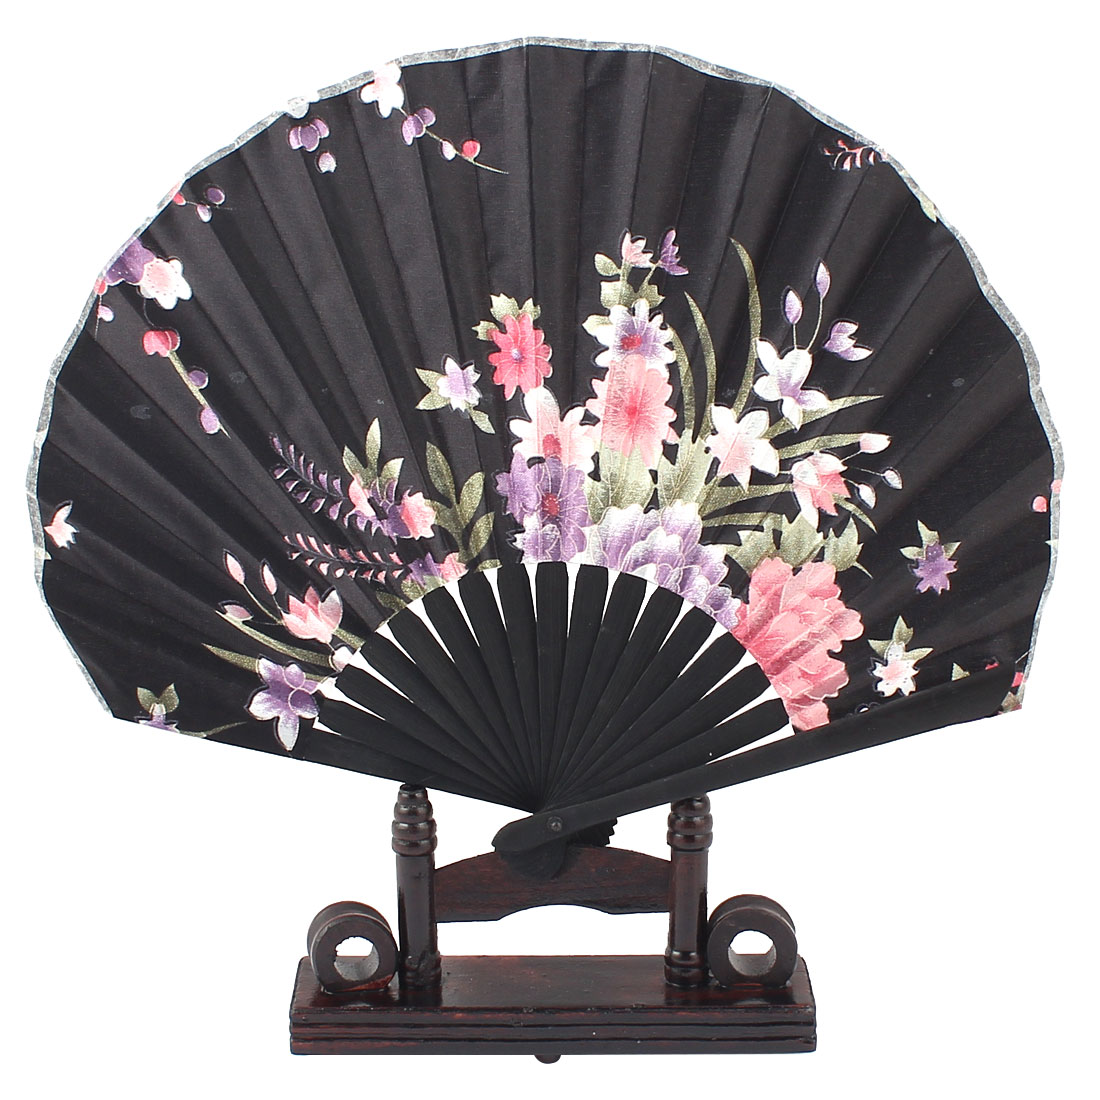 Bamboo Ribs Chinese Style Purple Pink Blooming Flower Pattern Black Fabric Cloth Folding Hand Fan Decor Gift w Wooden Holder